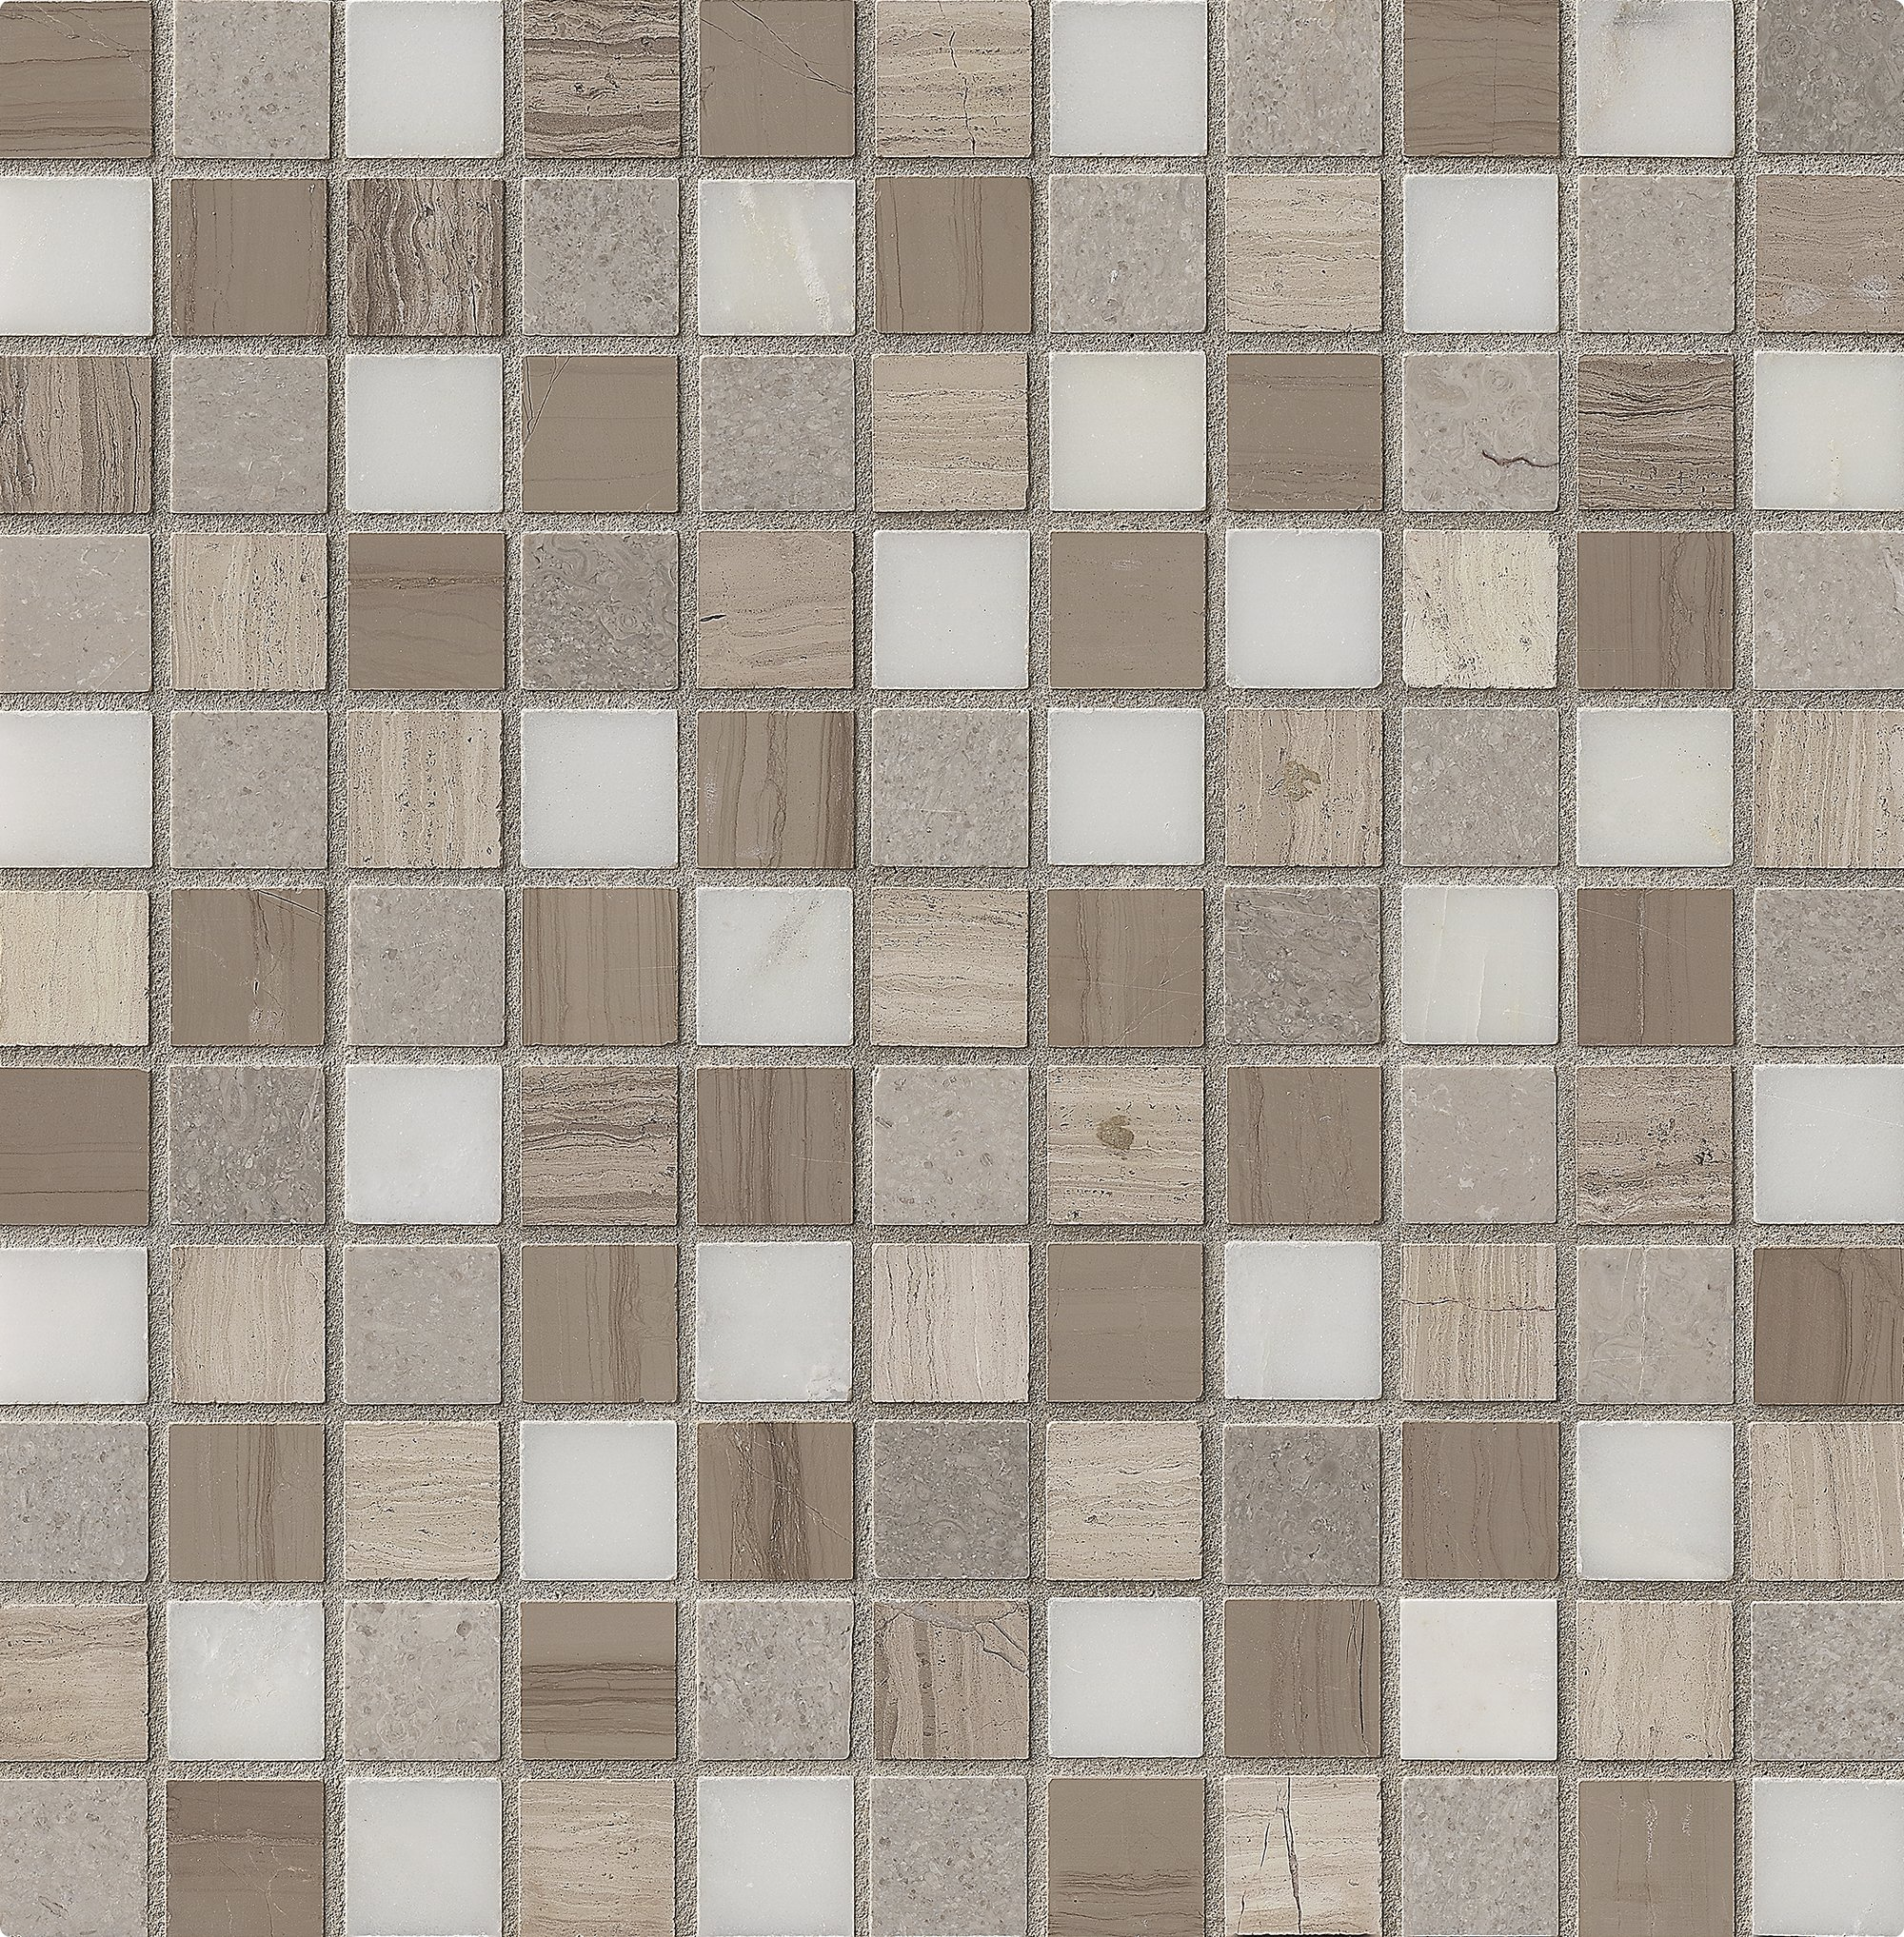 M S International Arctic Storm 1 In. X 1 In. Honed Marble Mesh-Mounted Mosaic Tile, (10 sq. ft., 10 pieces per case)